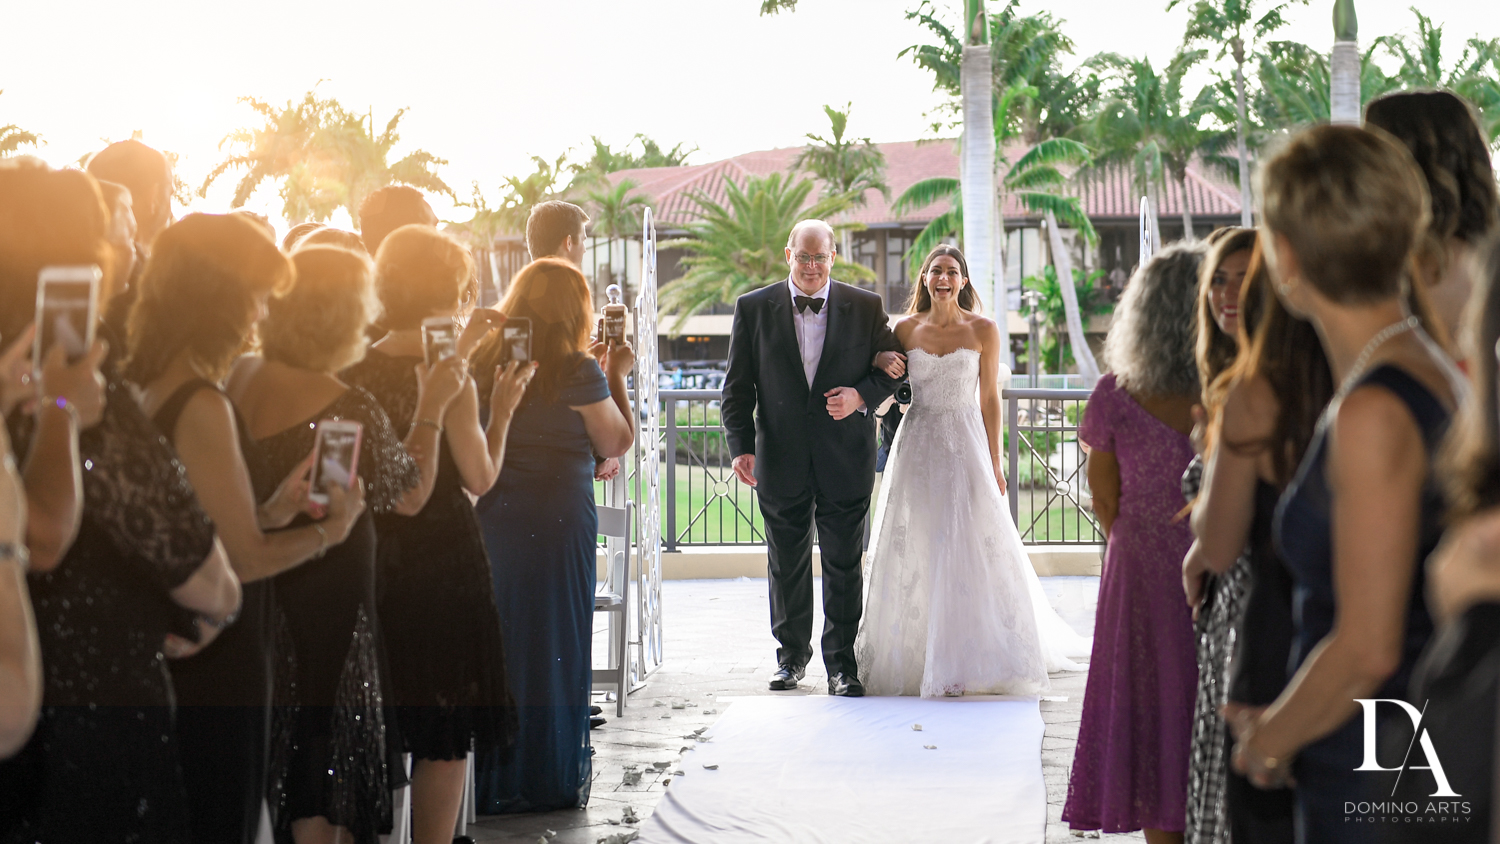 here comes the bride at Stunning Golf Course Wedding at PGA National Palm Beach by Domino Arts Photography